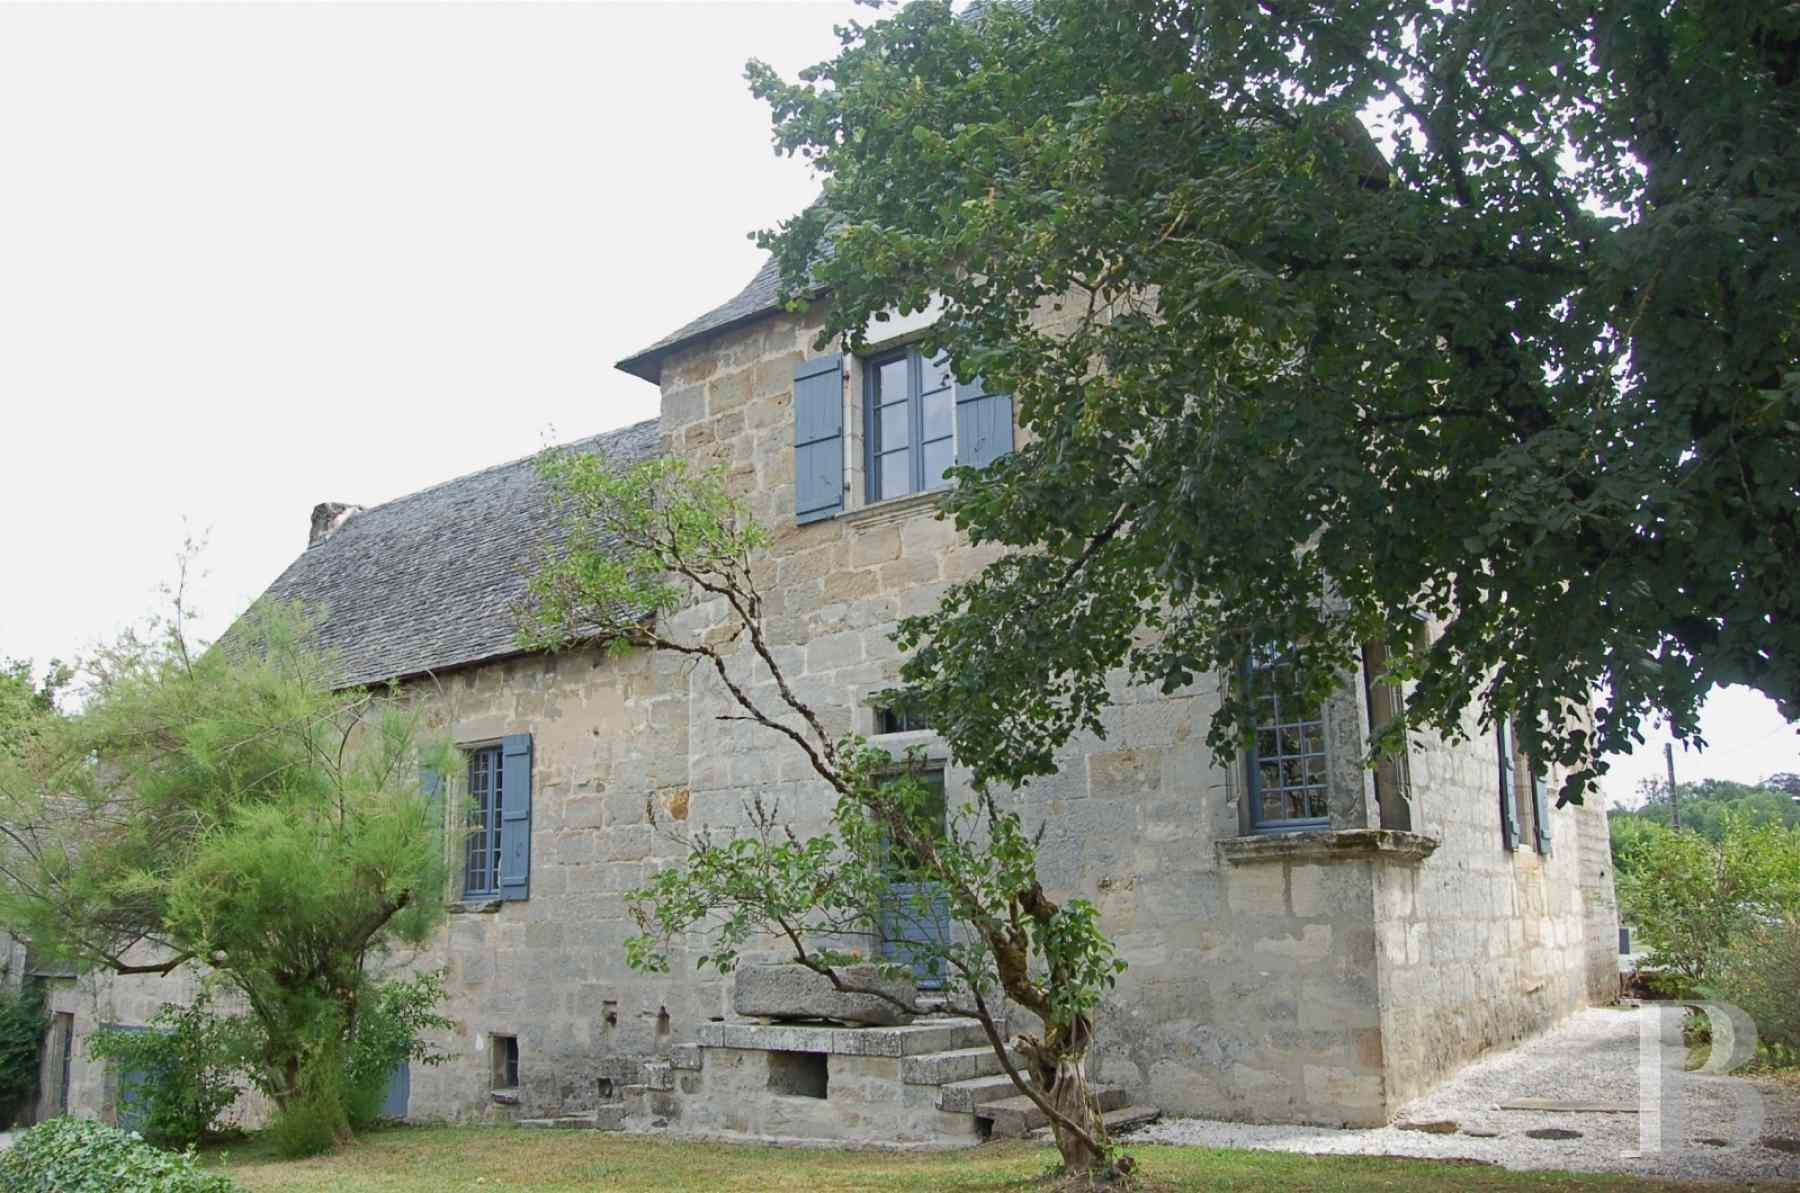 property for sale France limousin perigord quercy - 4 zoom